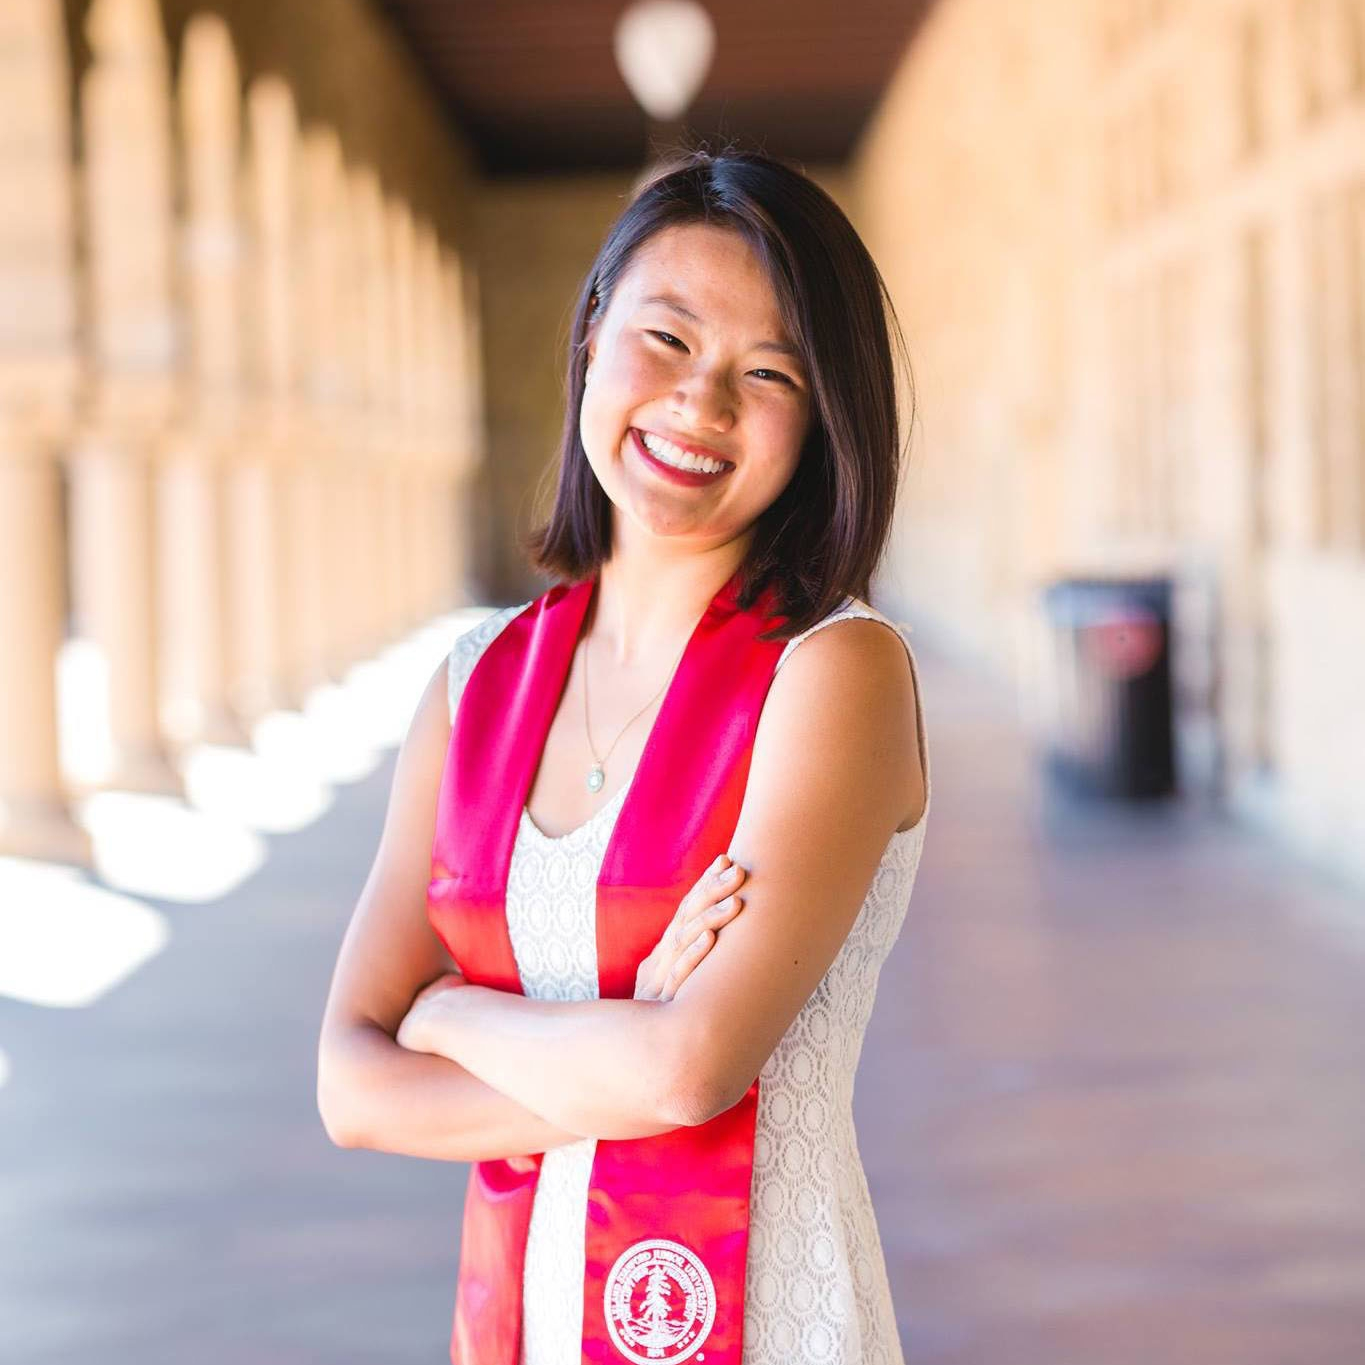 Alina Luk - BS, Science, Technology & Society, Stanford University, 2016 Incoming Associate Product Manager, Facebook Harvard Business School 2+2 Program